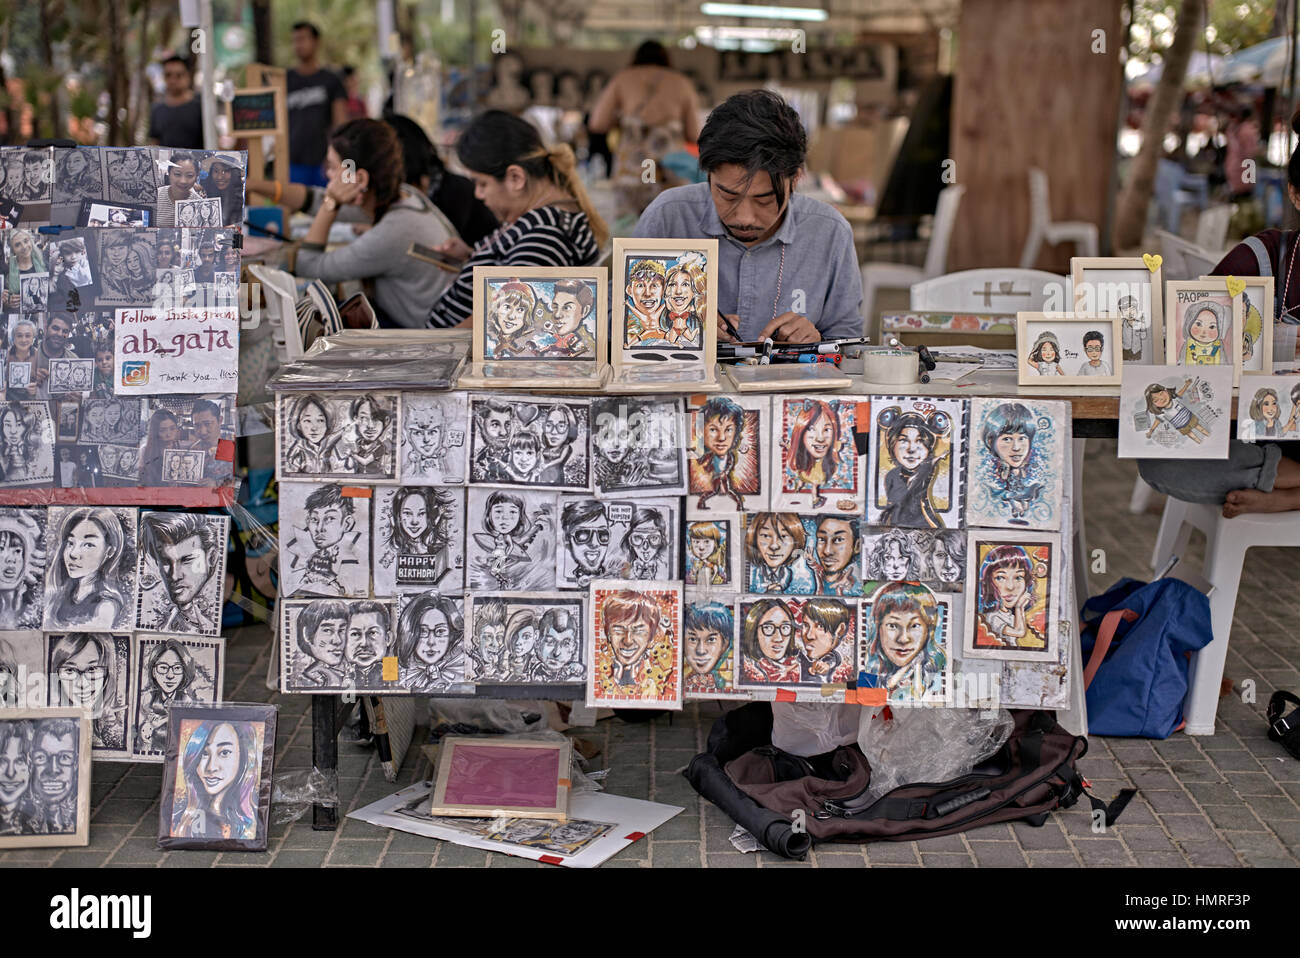 Asian portrait artist drawing caricatures of his subjects. Pattaya Arts Festival 2017. Thailand S. E. Asia - Stock Image